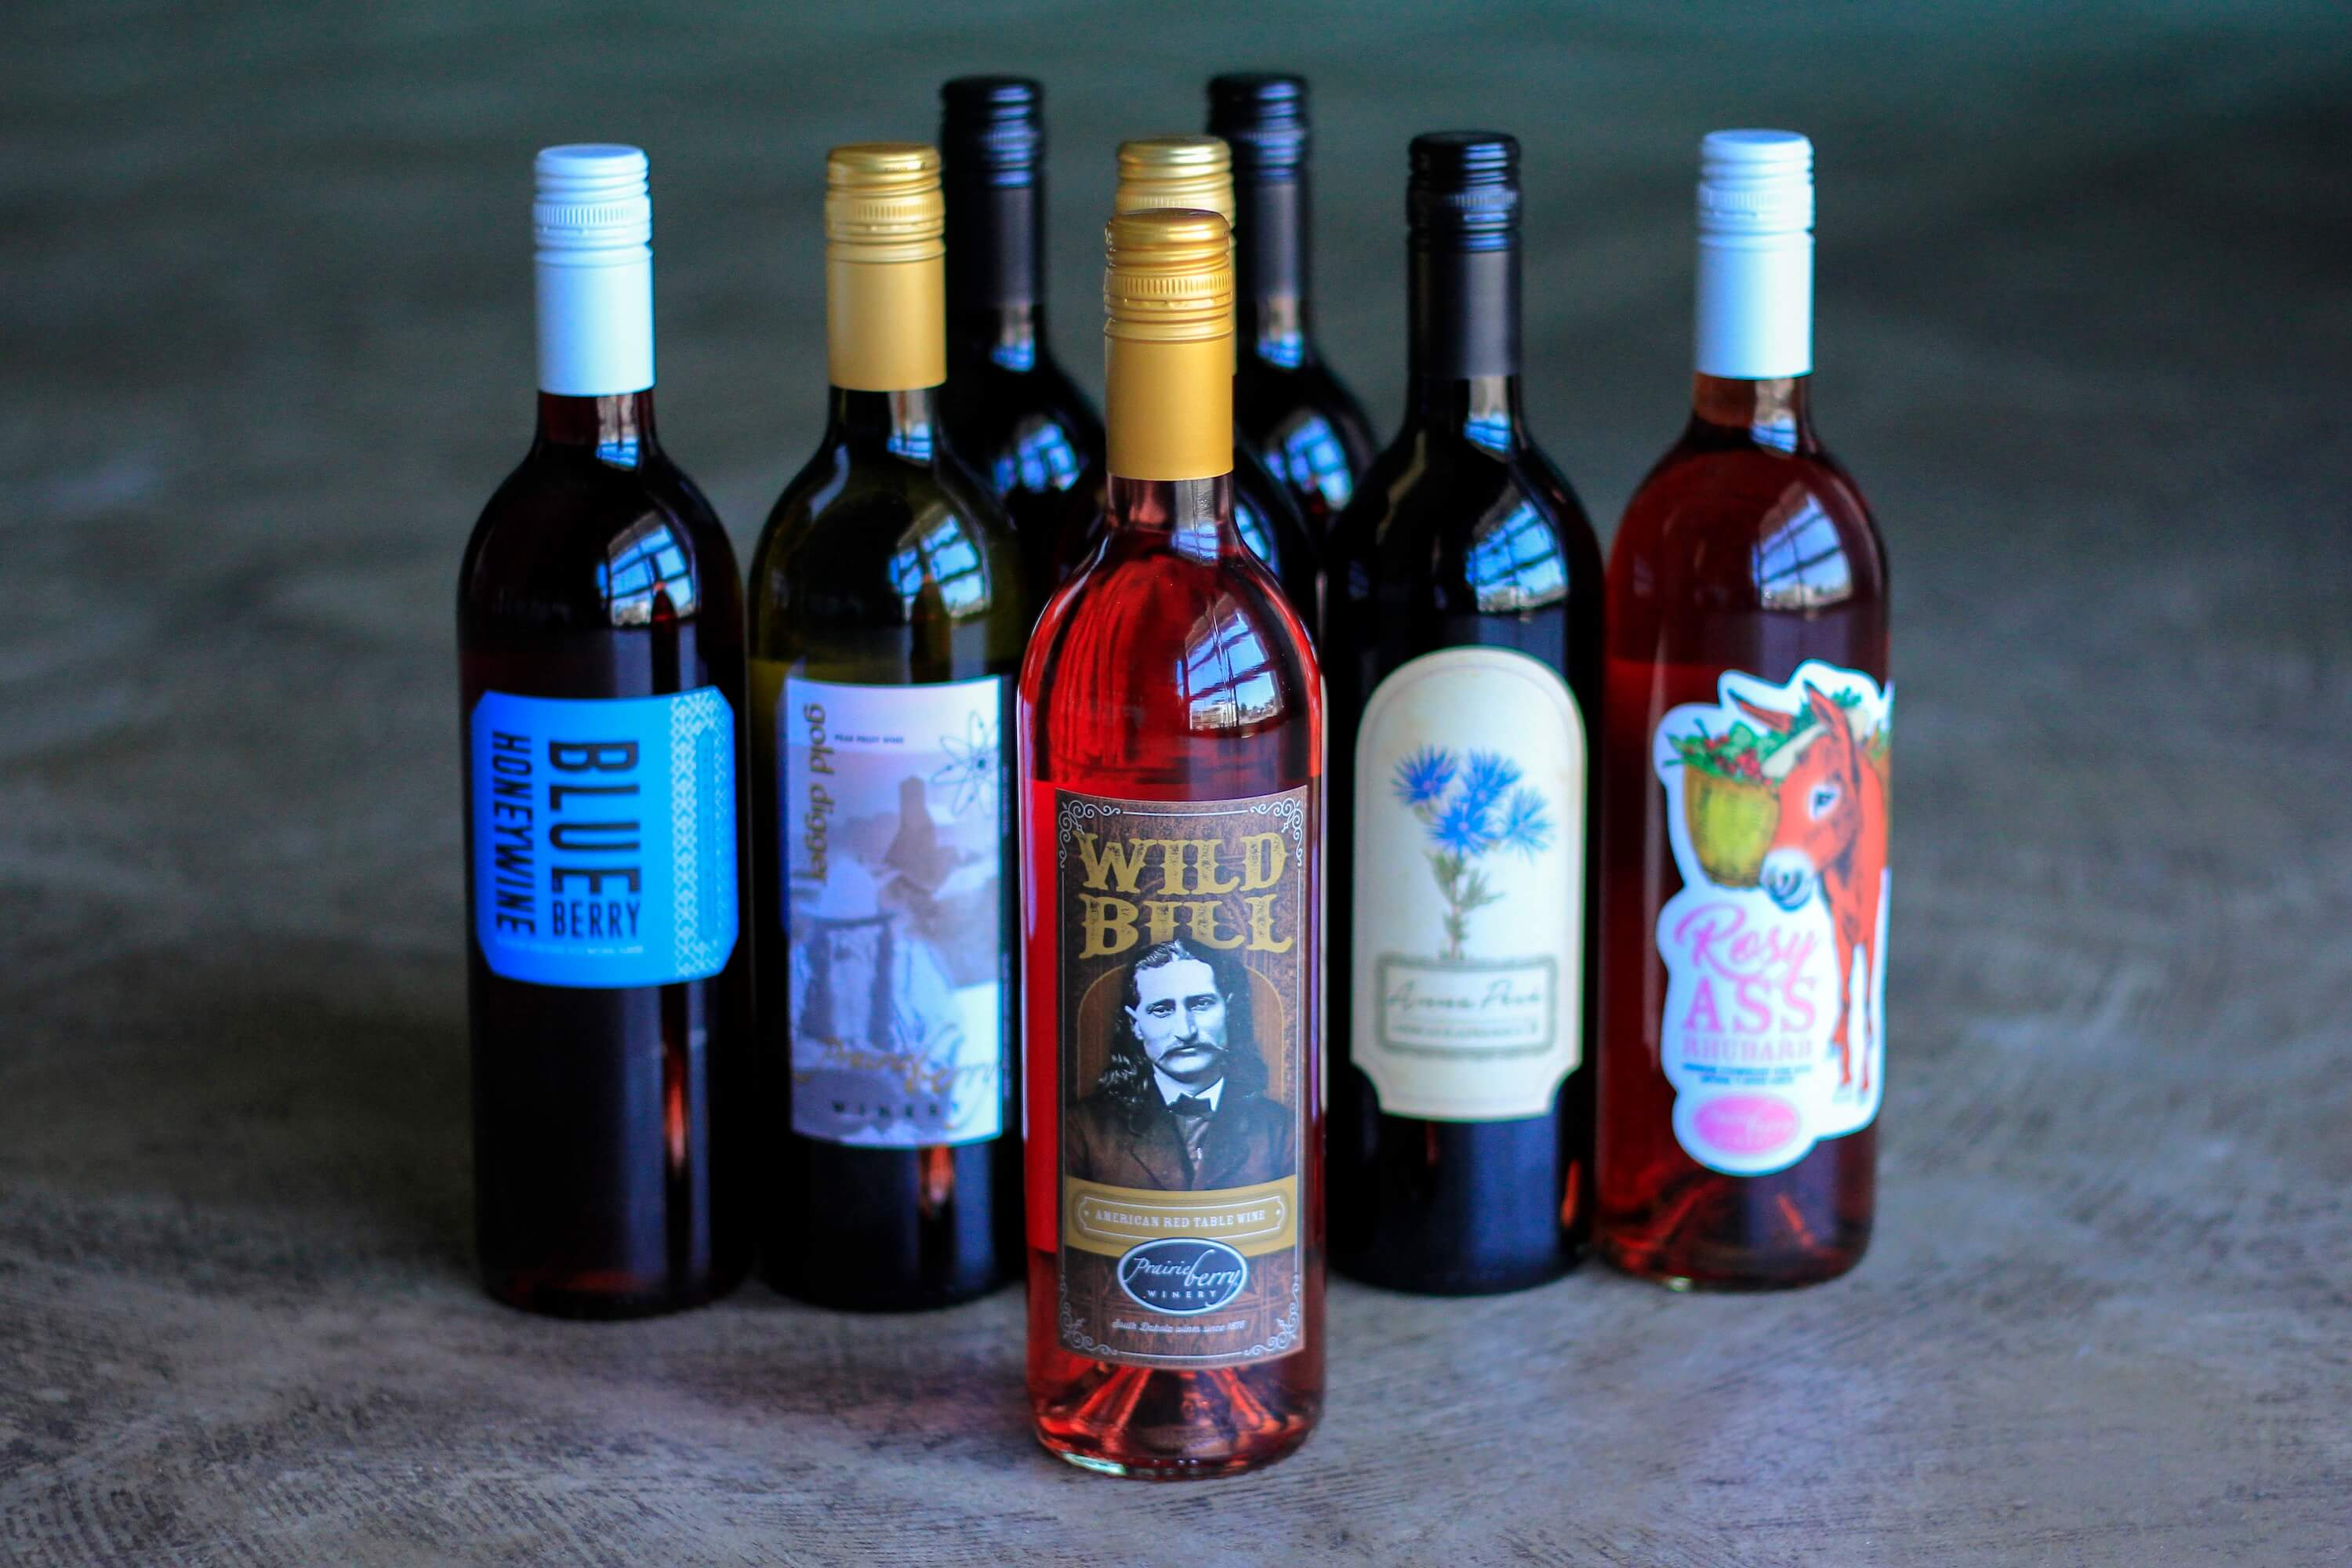 Wild Bill won a Double Gold medal at the 2019 Indy International Wine Competition. Additionally, Prairie Berry Winery and Anna Pesä wines brought home five silver and two bronze medals.